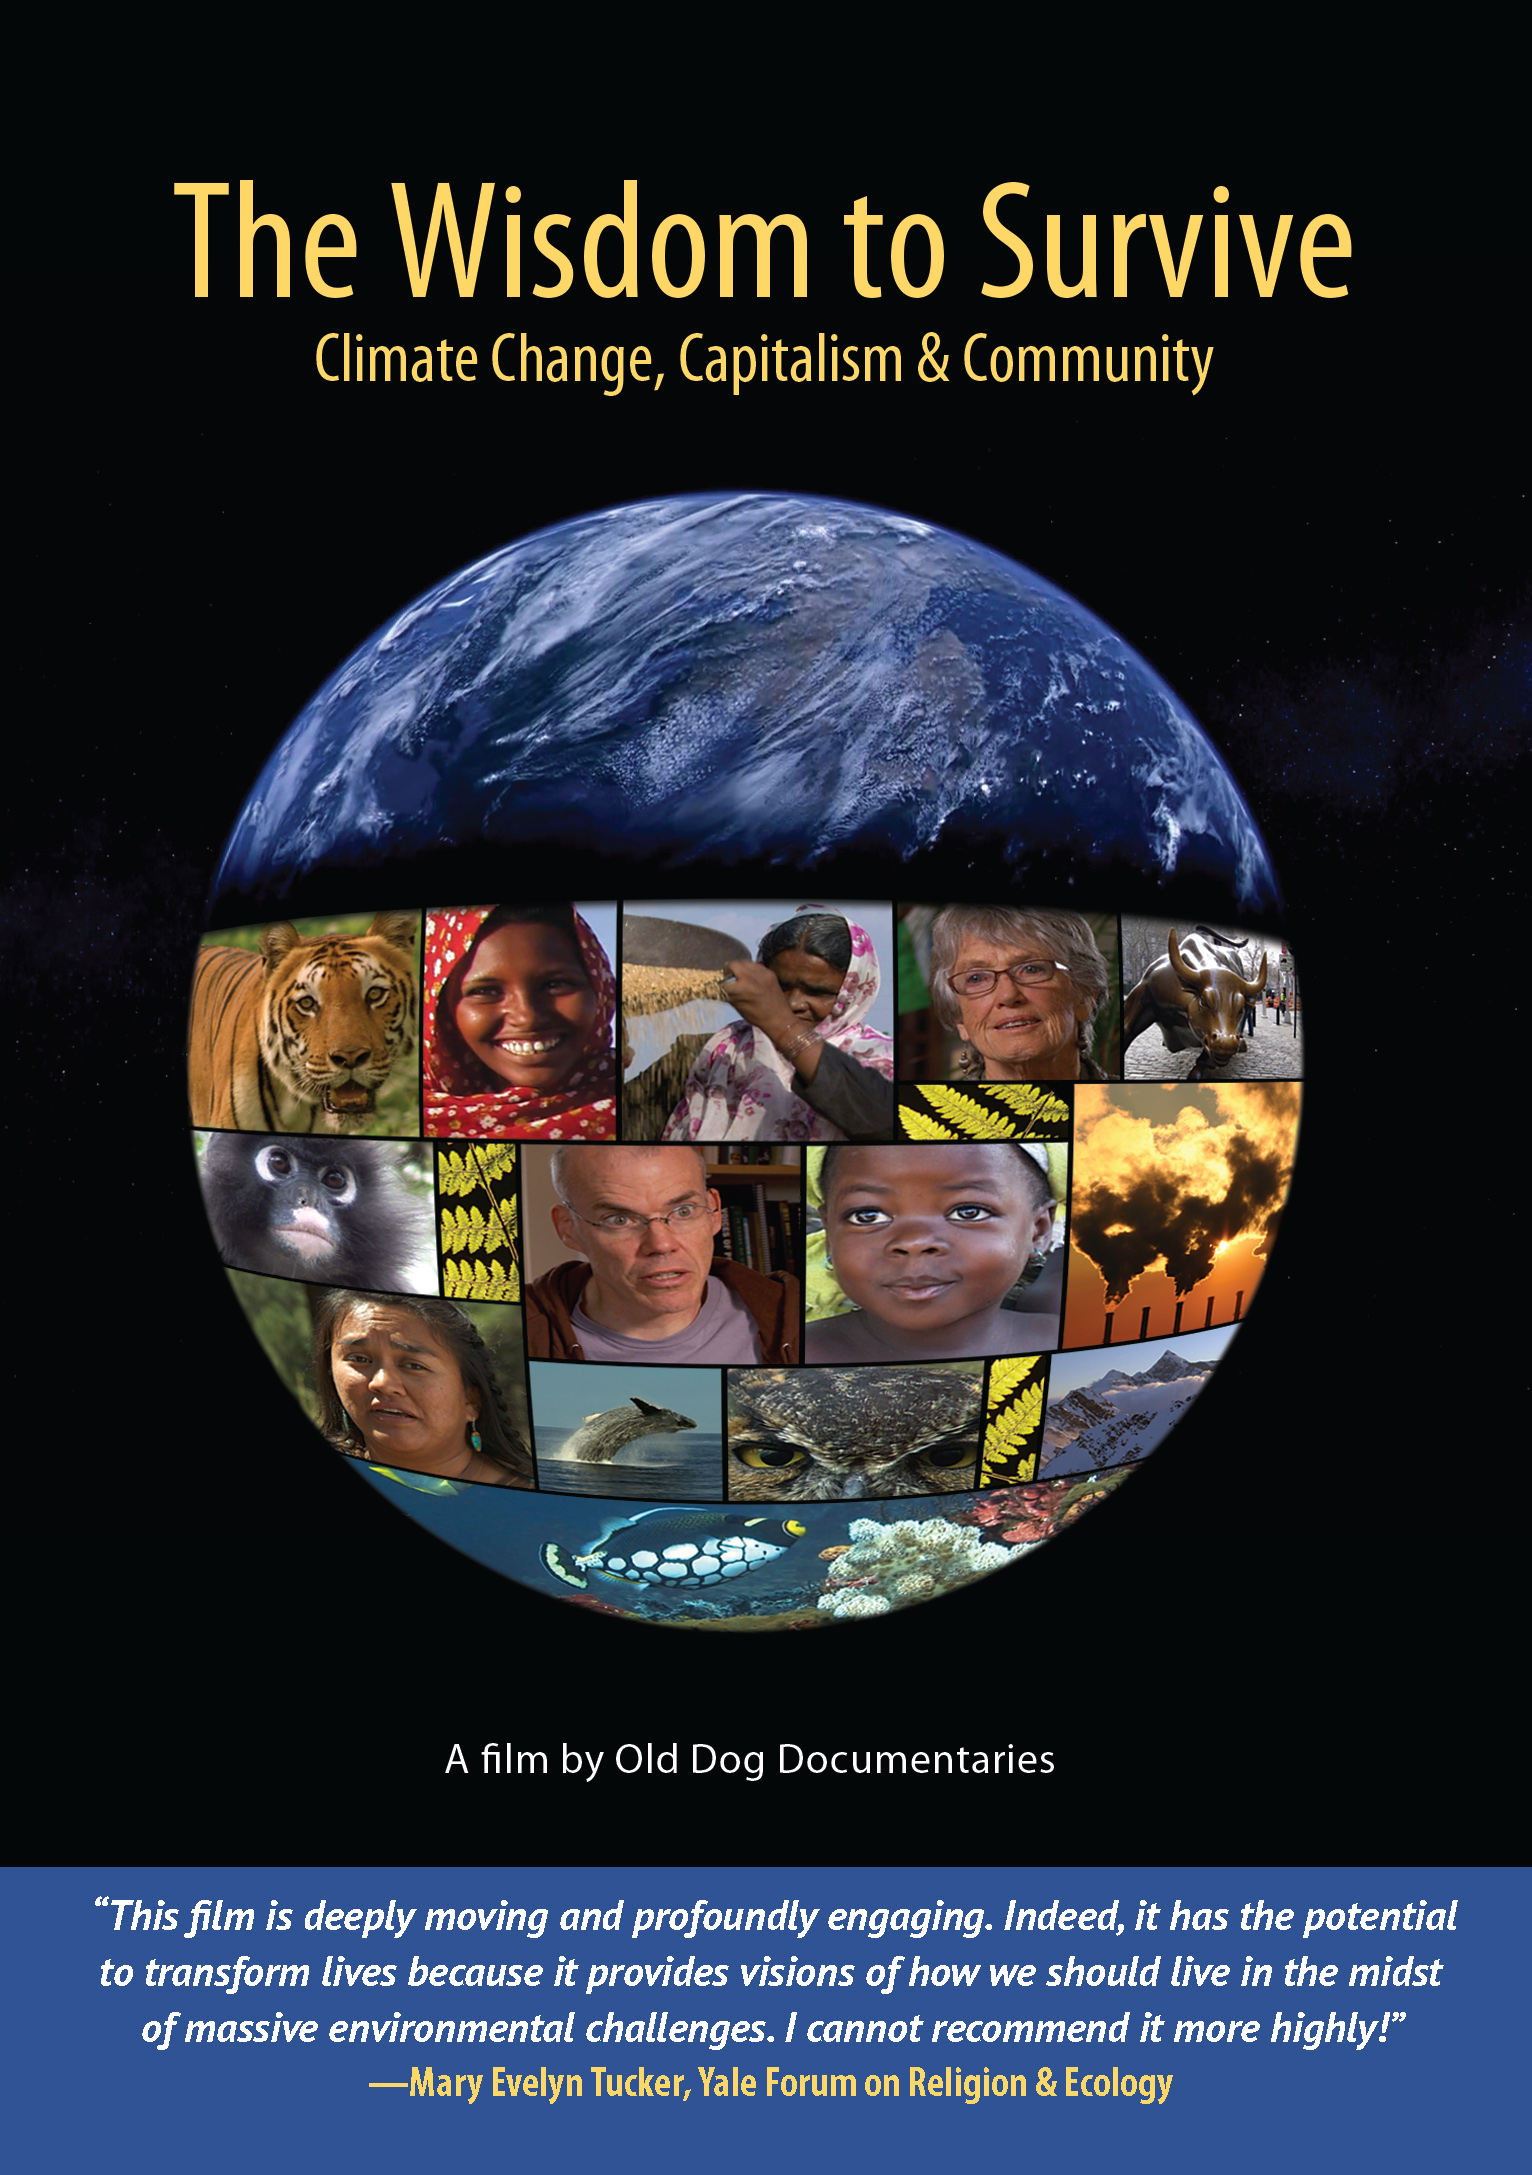 THE WISDOM TO SURVIVE examines the challenges that climate change poses and discusses meaningful action that can be taken by individuals and communities.